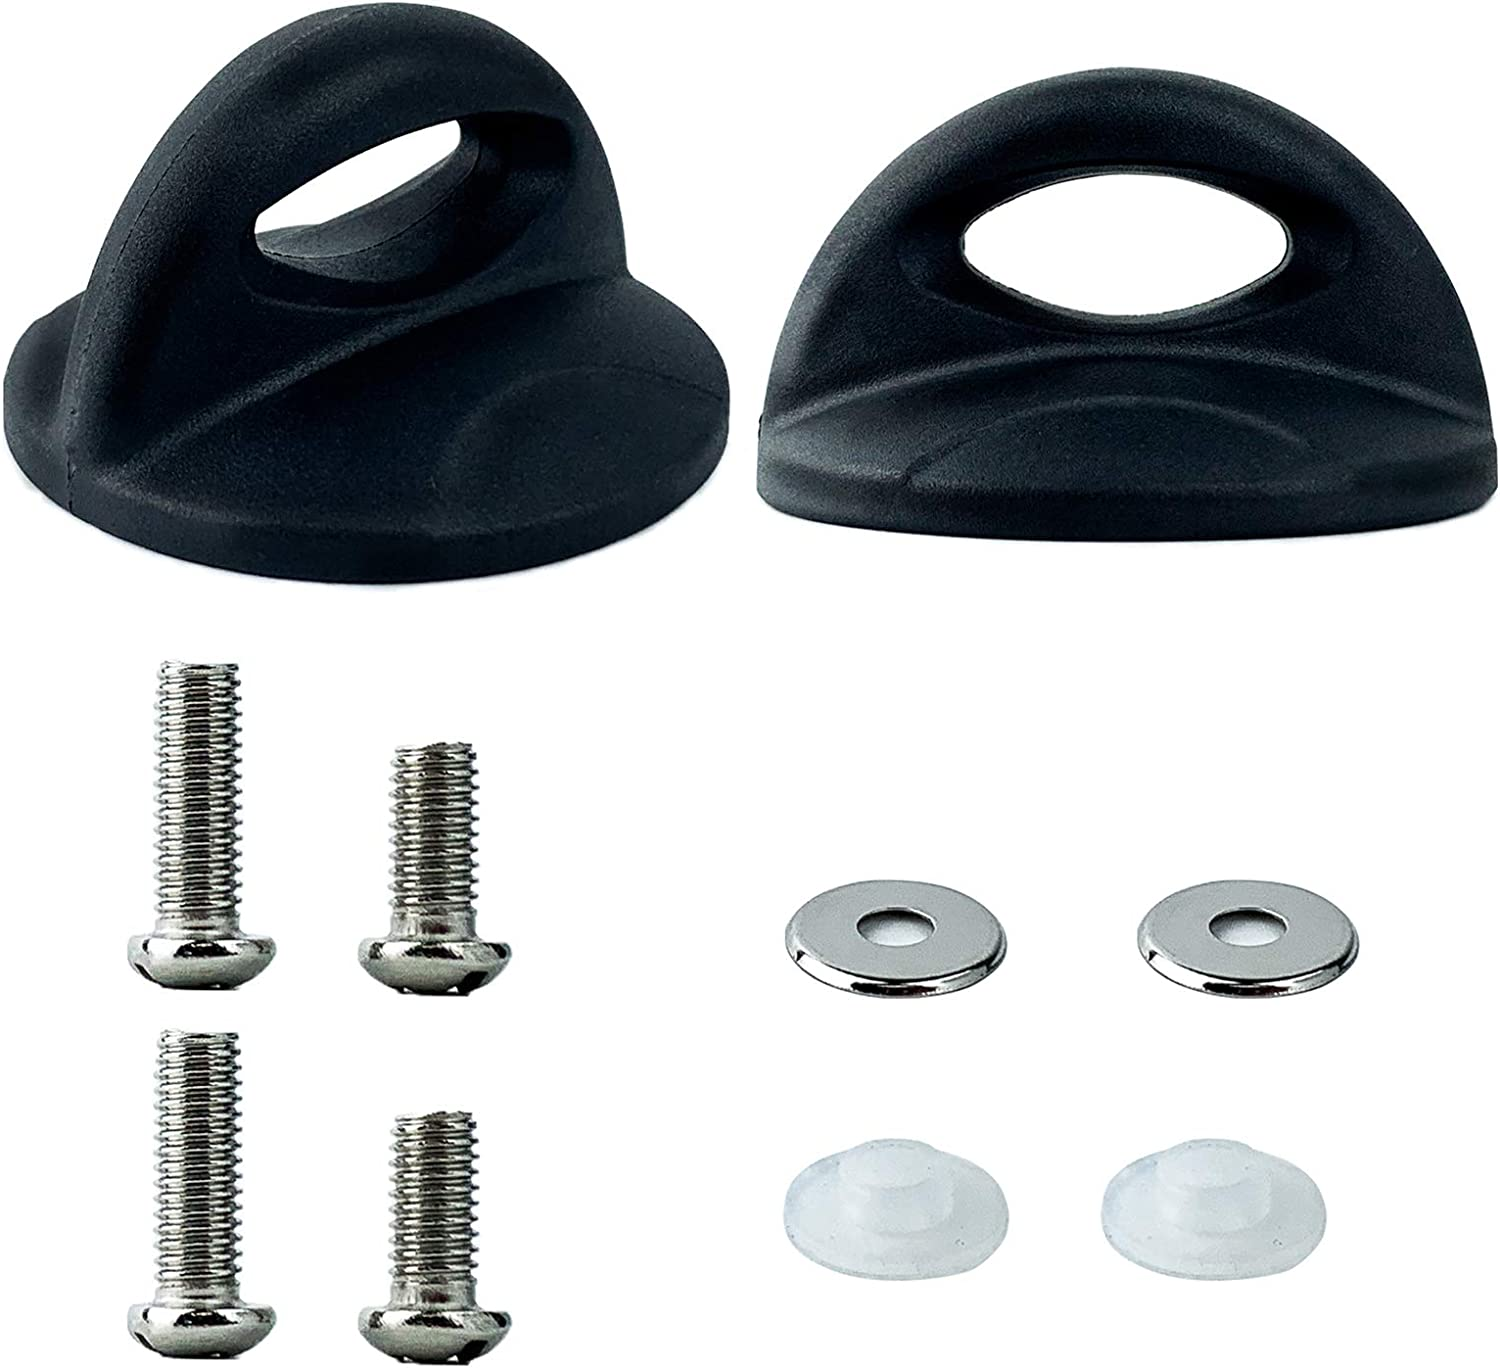 2 PACK Pot Lid Top Replacement Knob Sector Style. Kitchen Cookware Universal Replacement Pan Lid Holding Handles.